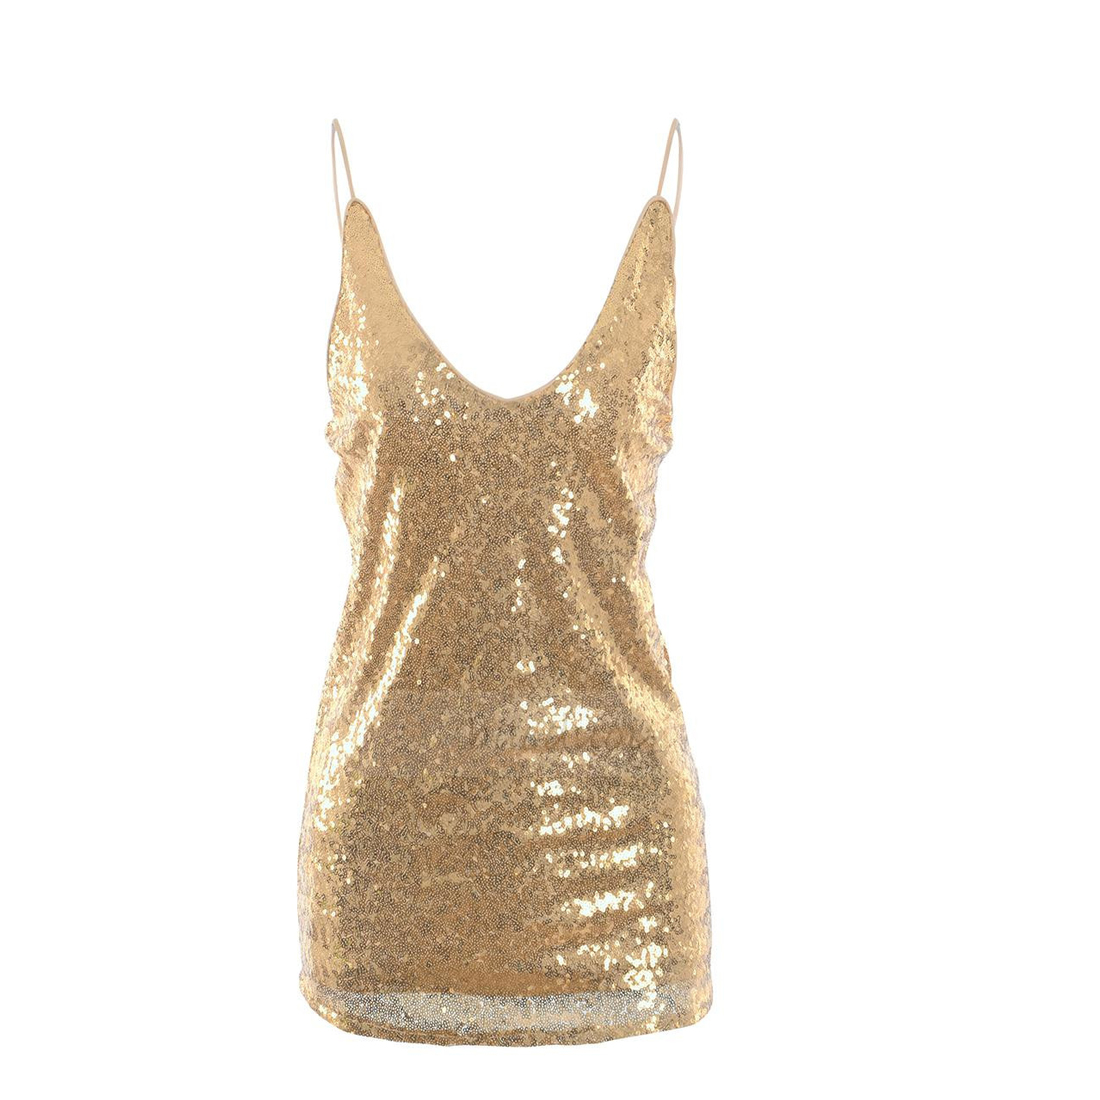 HTB1cVS9RVXXXXXgXXXXq6xXFXXX5 - Tank Top Summer Sexy Sleeveless Shirts Gold JKP089